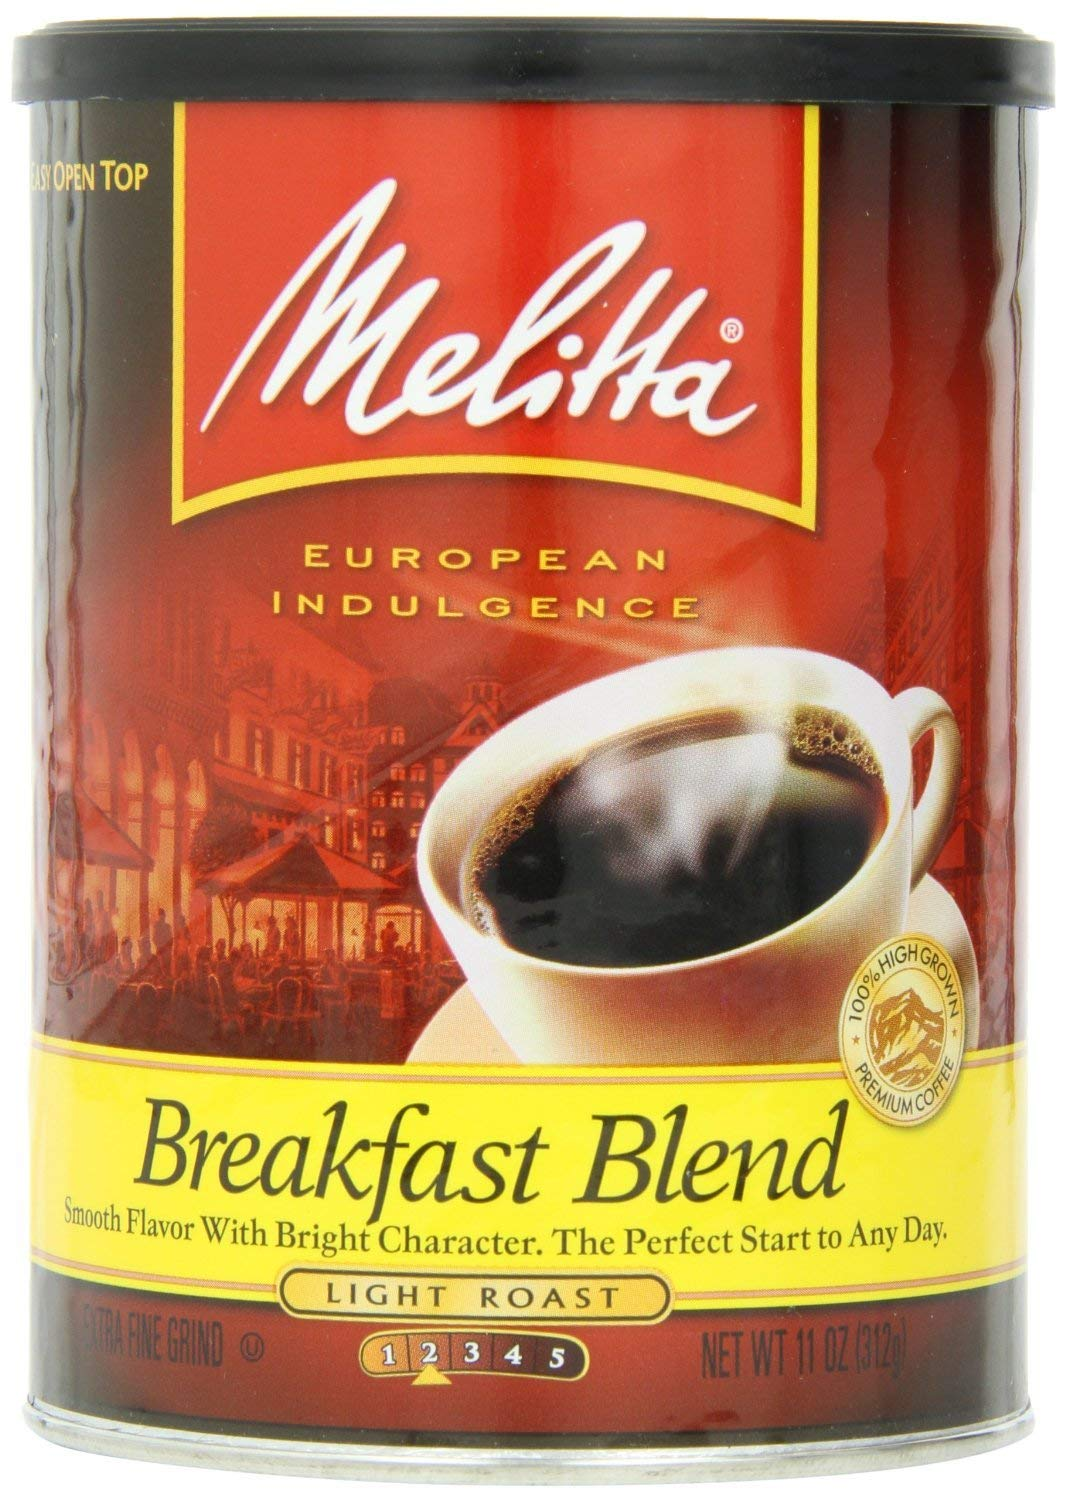 Melitta Coffee, Breakfast Blend Ground, Light Roast, 11oz Can (Pack of 2)